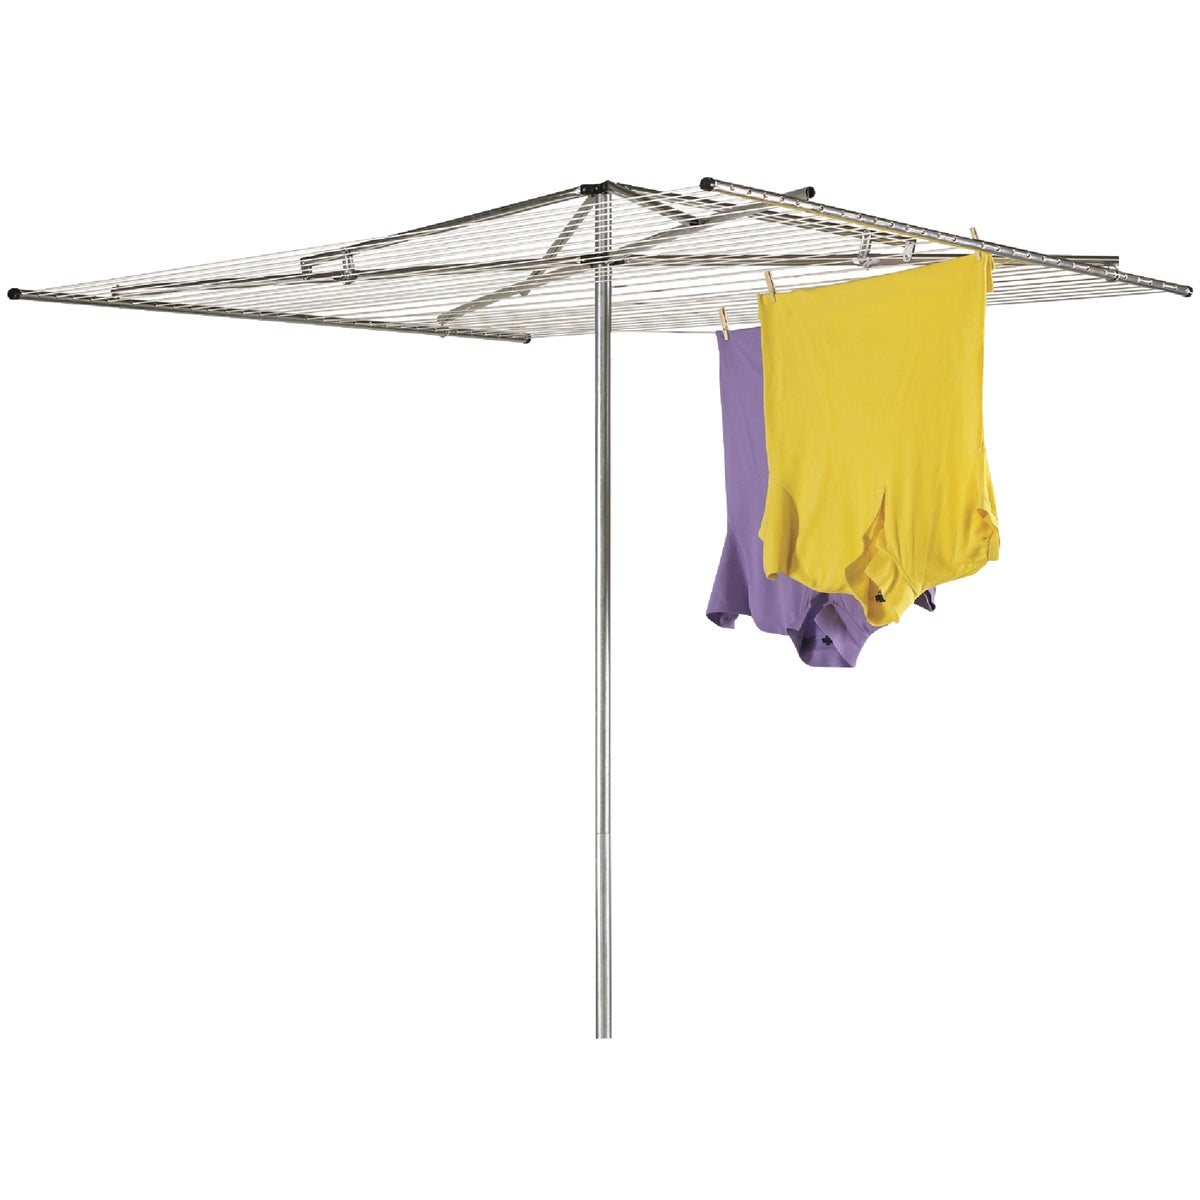 LINE CLOTHES DRYER - H150 by Household Essentials